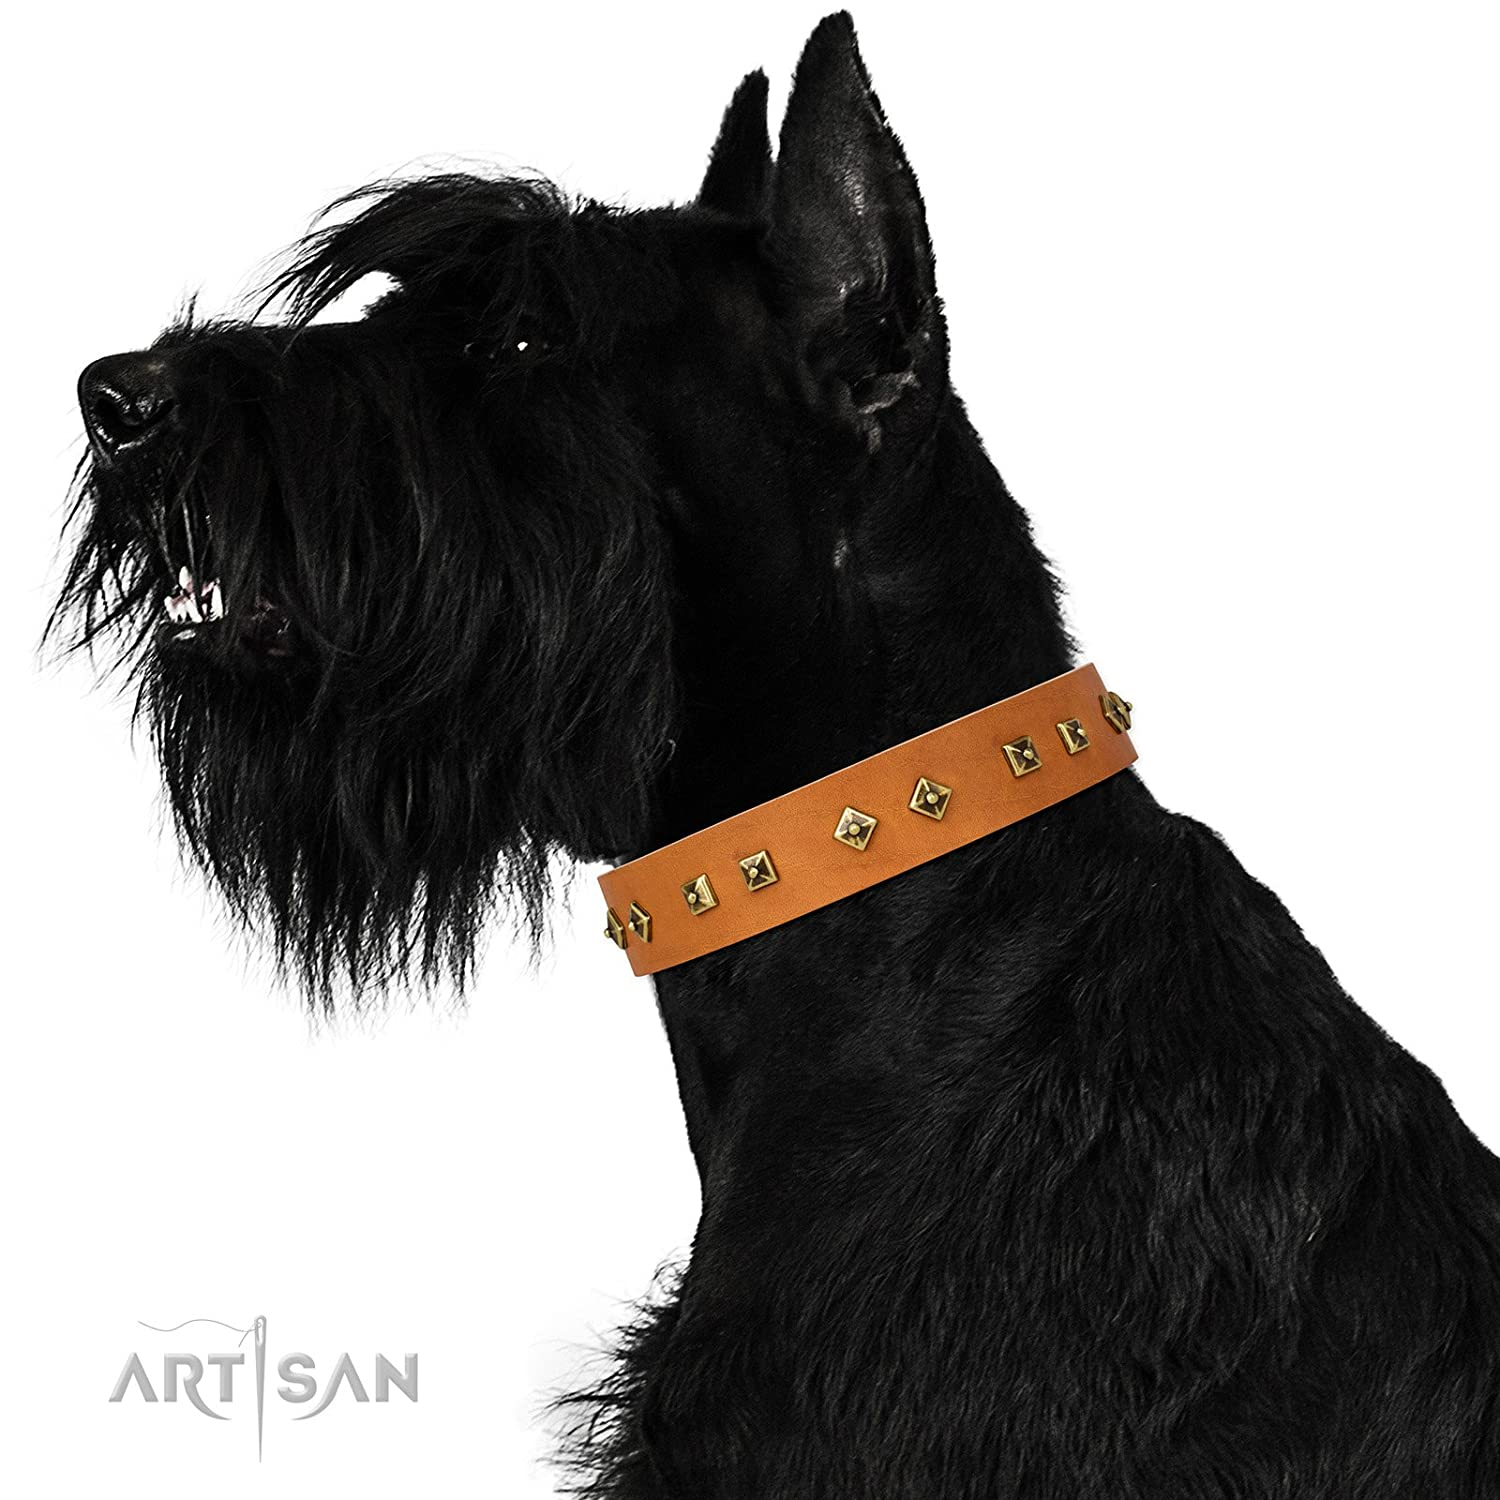 Fits for 19 inch (48cm) dog's neck size FDT Artisan 19 inch Studded Tan Leather Dog Collar Dimonds & Squares 1 1 2 inch (40 mm) Wide Gift Box Included